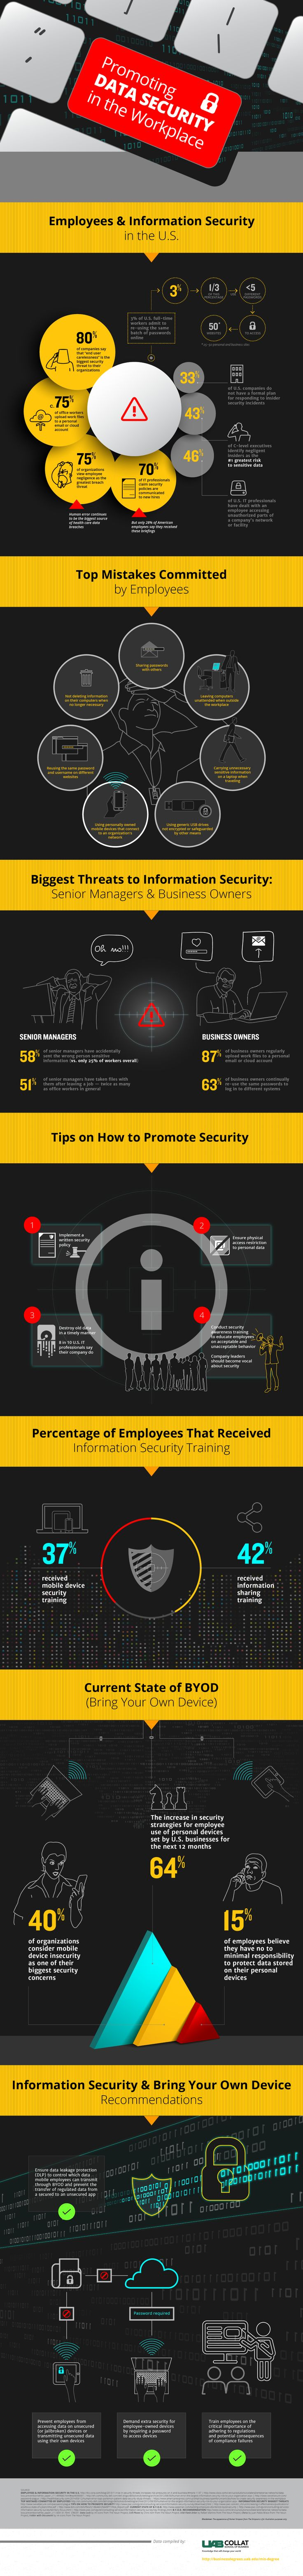 How to Improve Your Company's Data Security (Infographic) | Inc.com